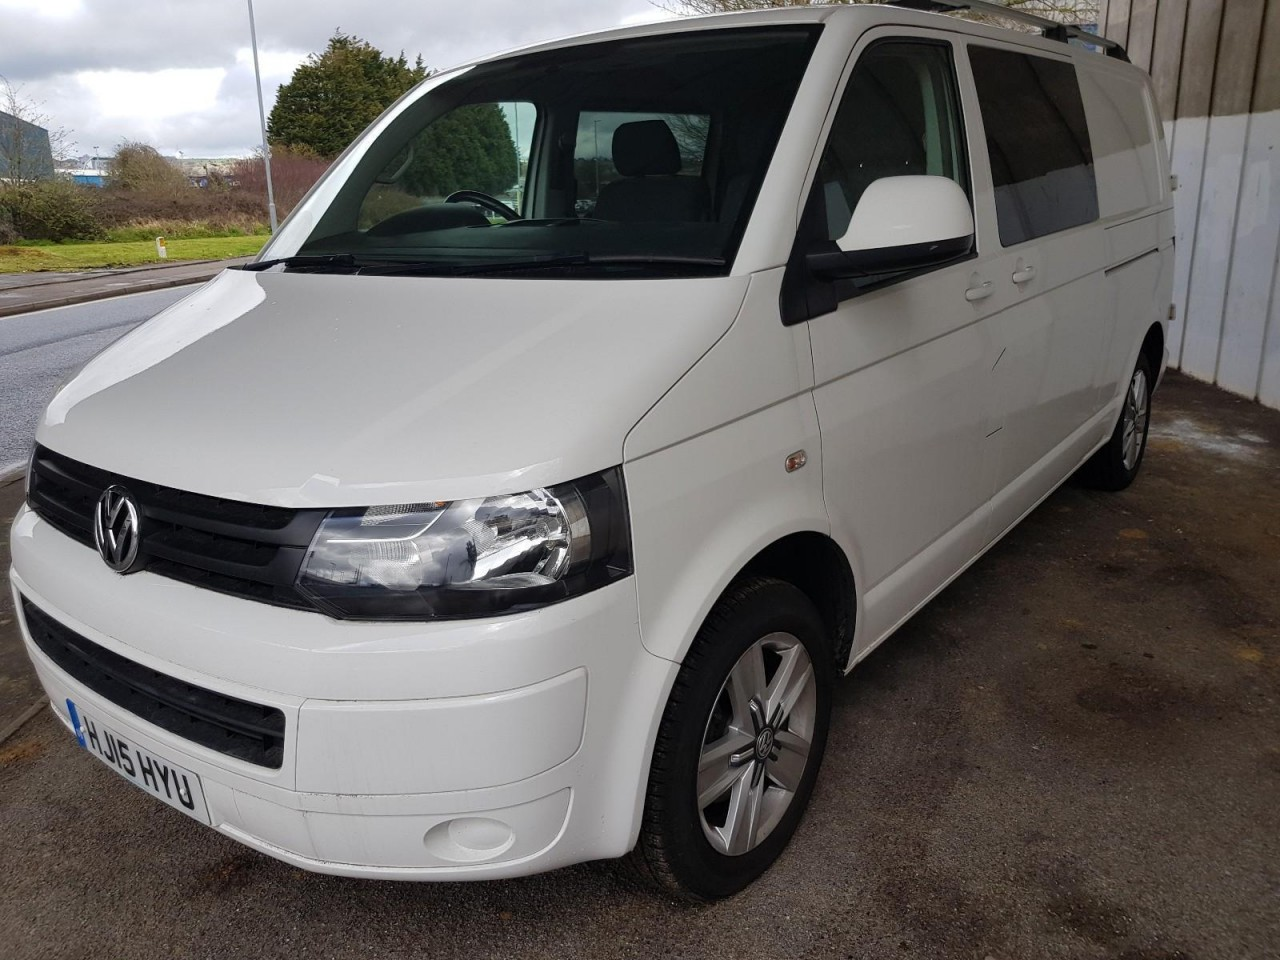 Vans, Cars & Minibuses for Sale at Trade Prices. Please call 023 9269 6961 for details!